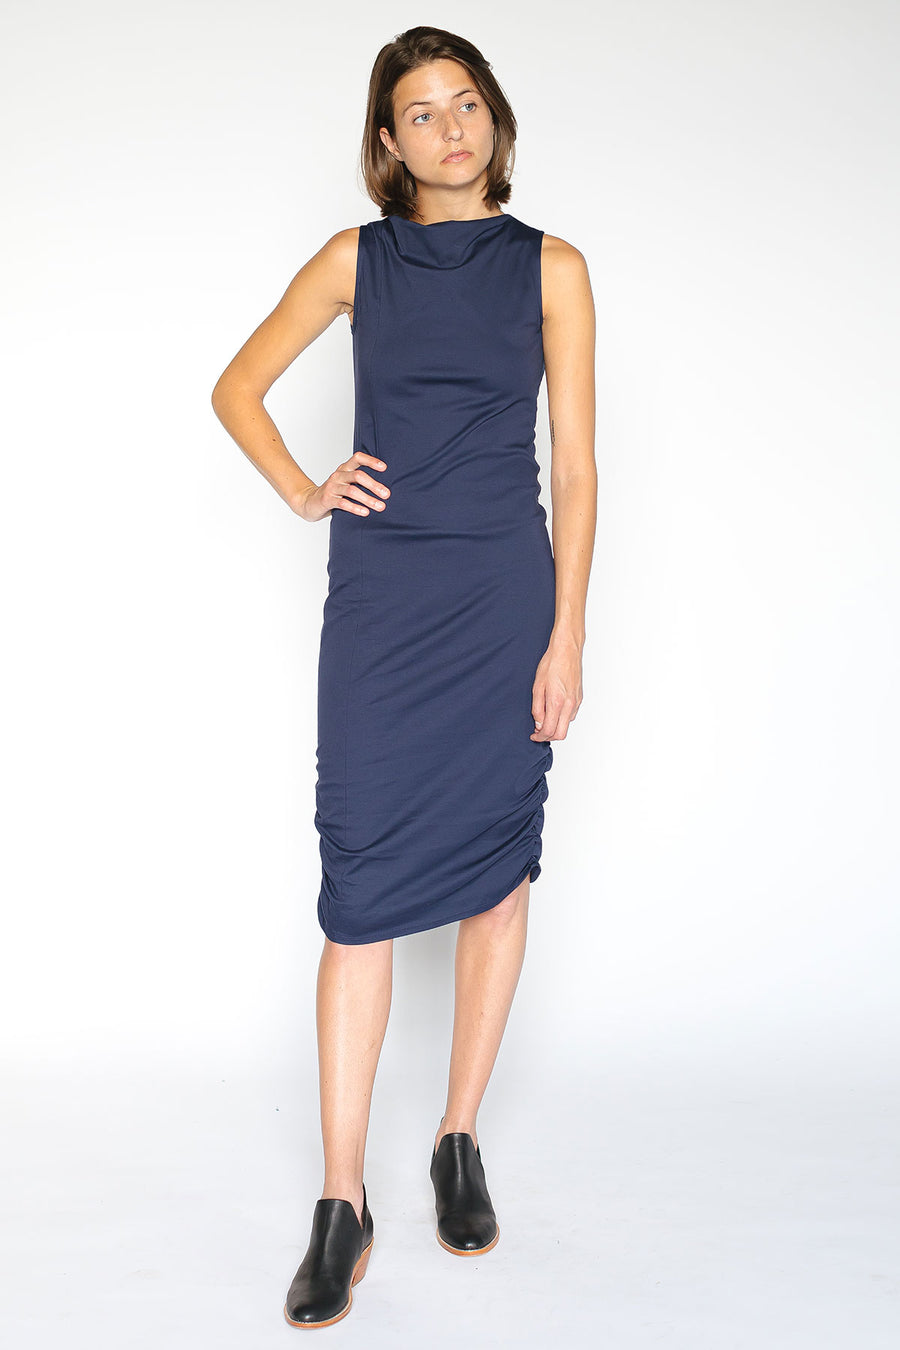 Navy Sleeveless Dress with Asymmetrical neckline